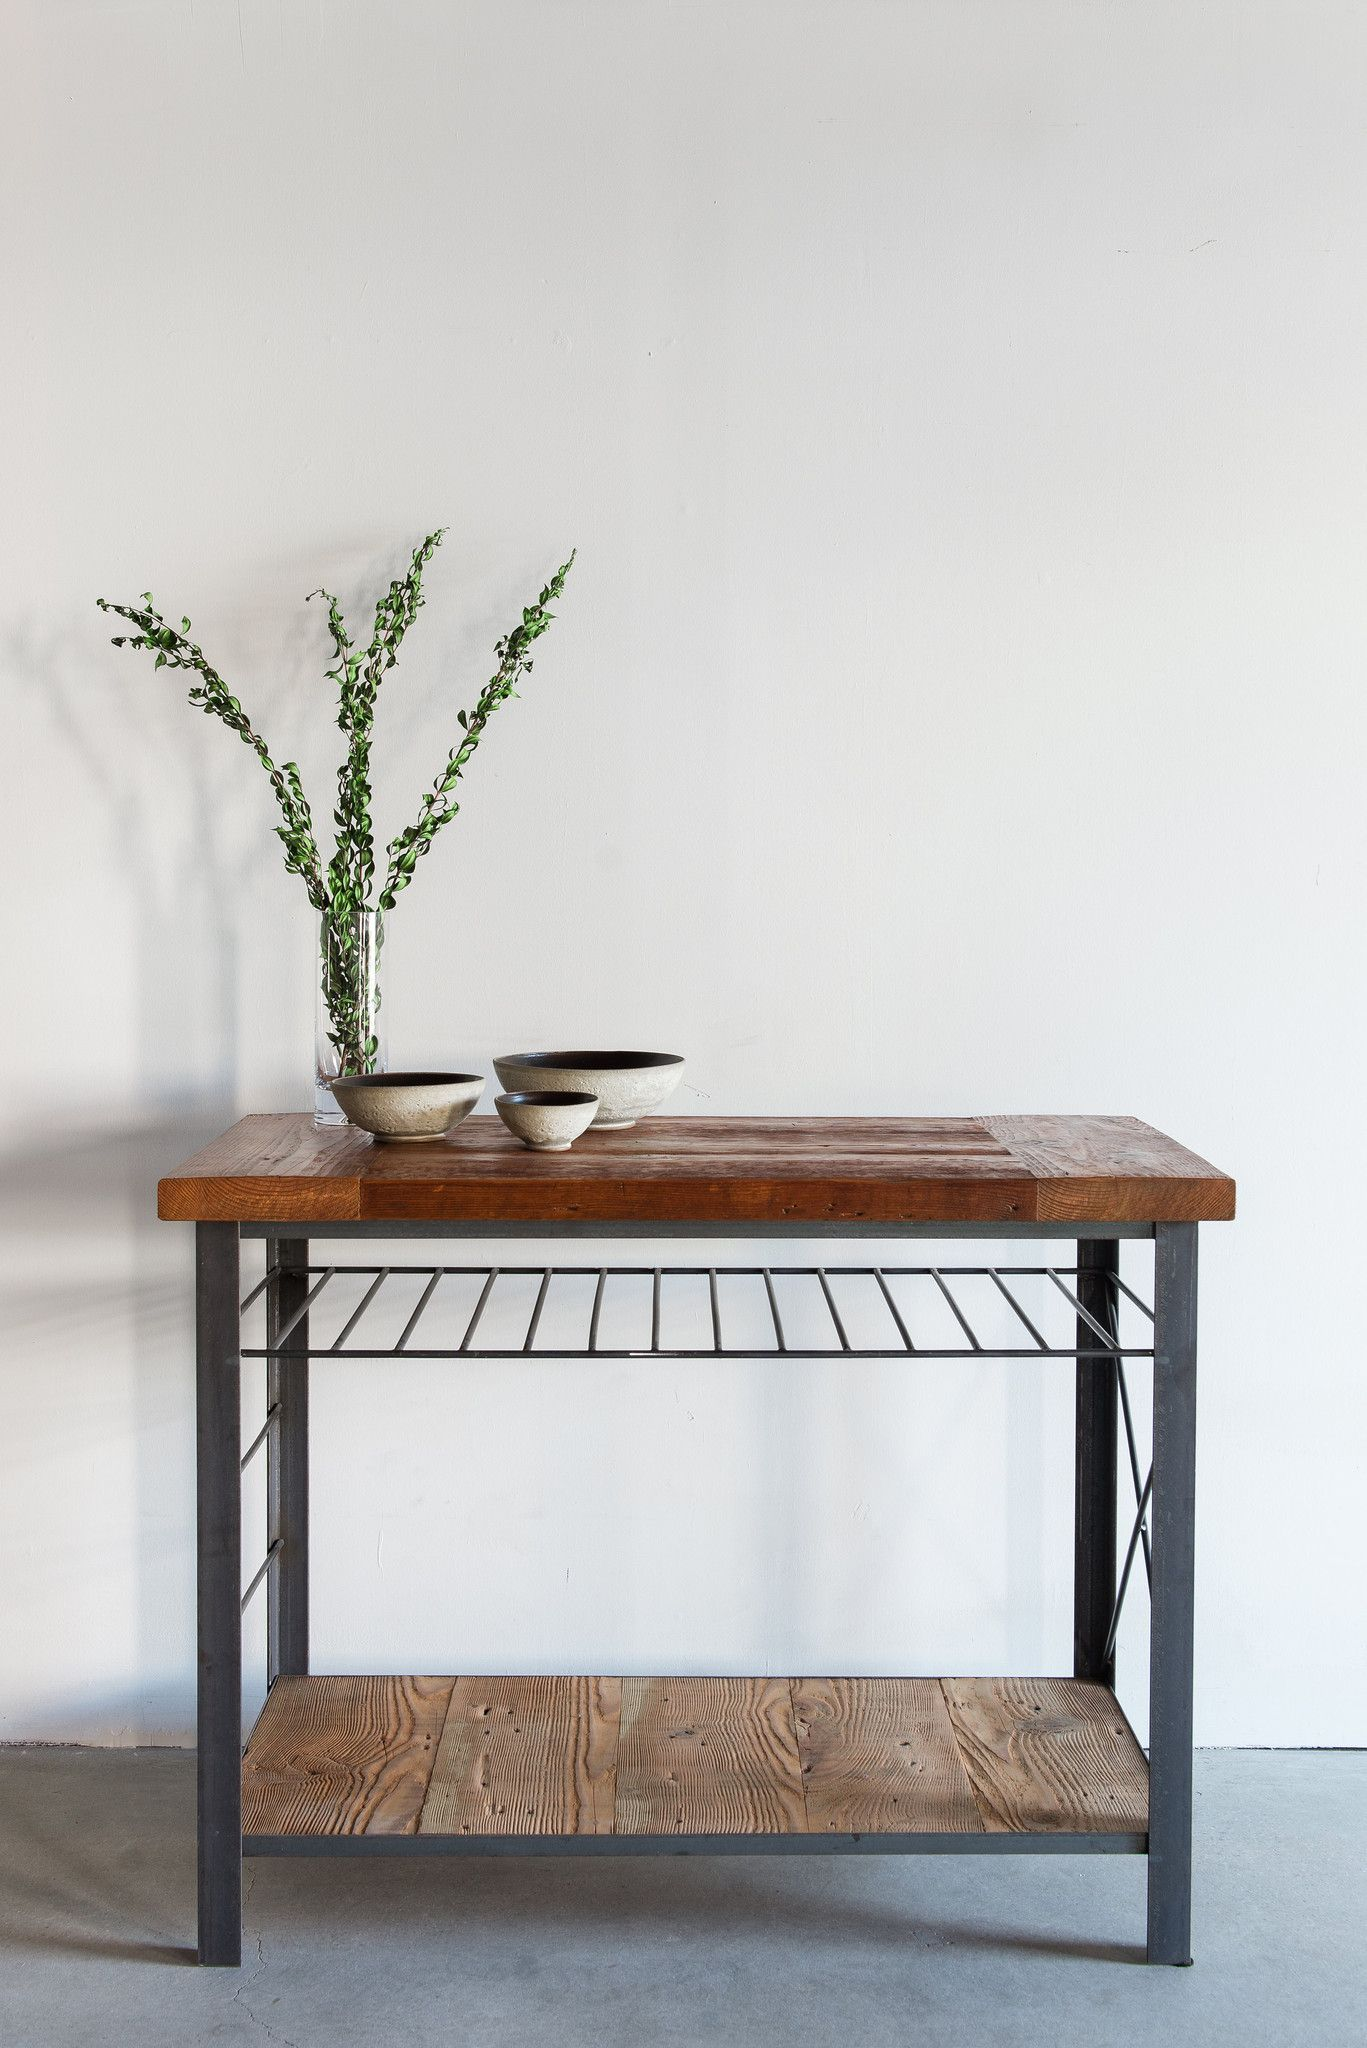 Railcar Kitchen Island Furniture, Handmade home